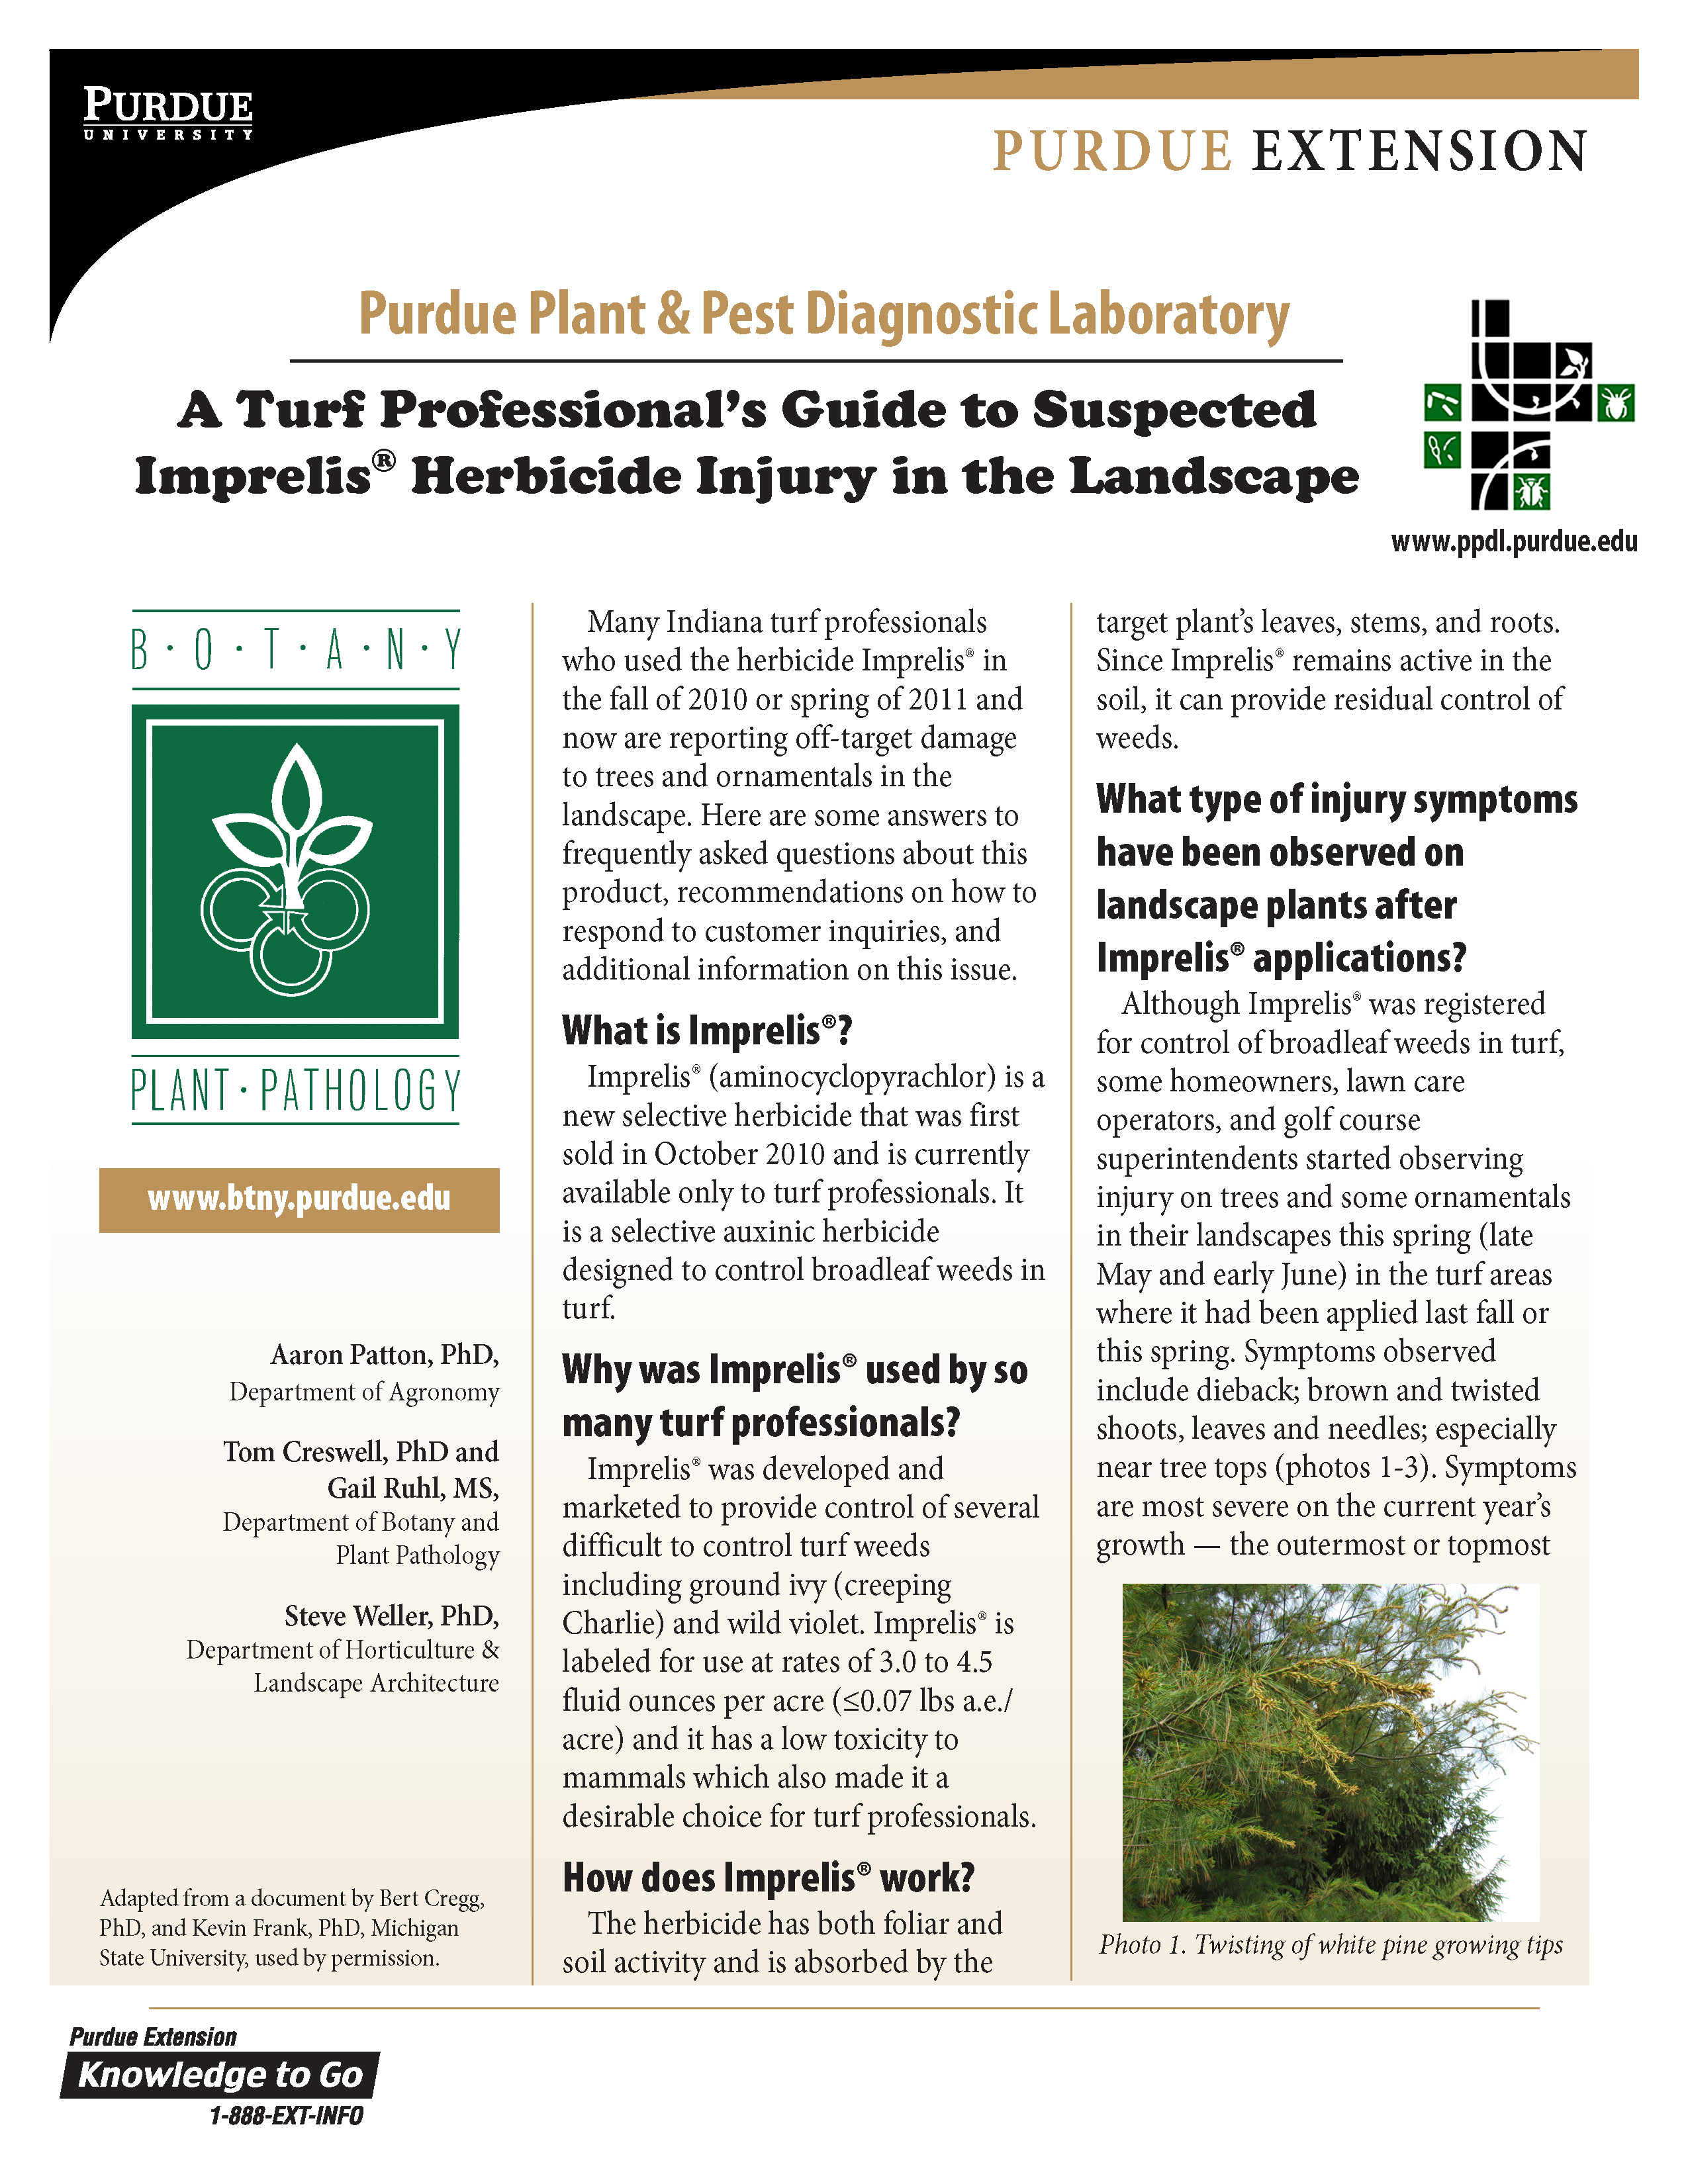 Purdue Publication on Imprelis Herbicide